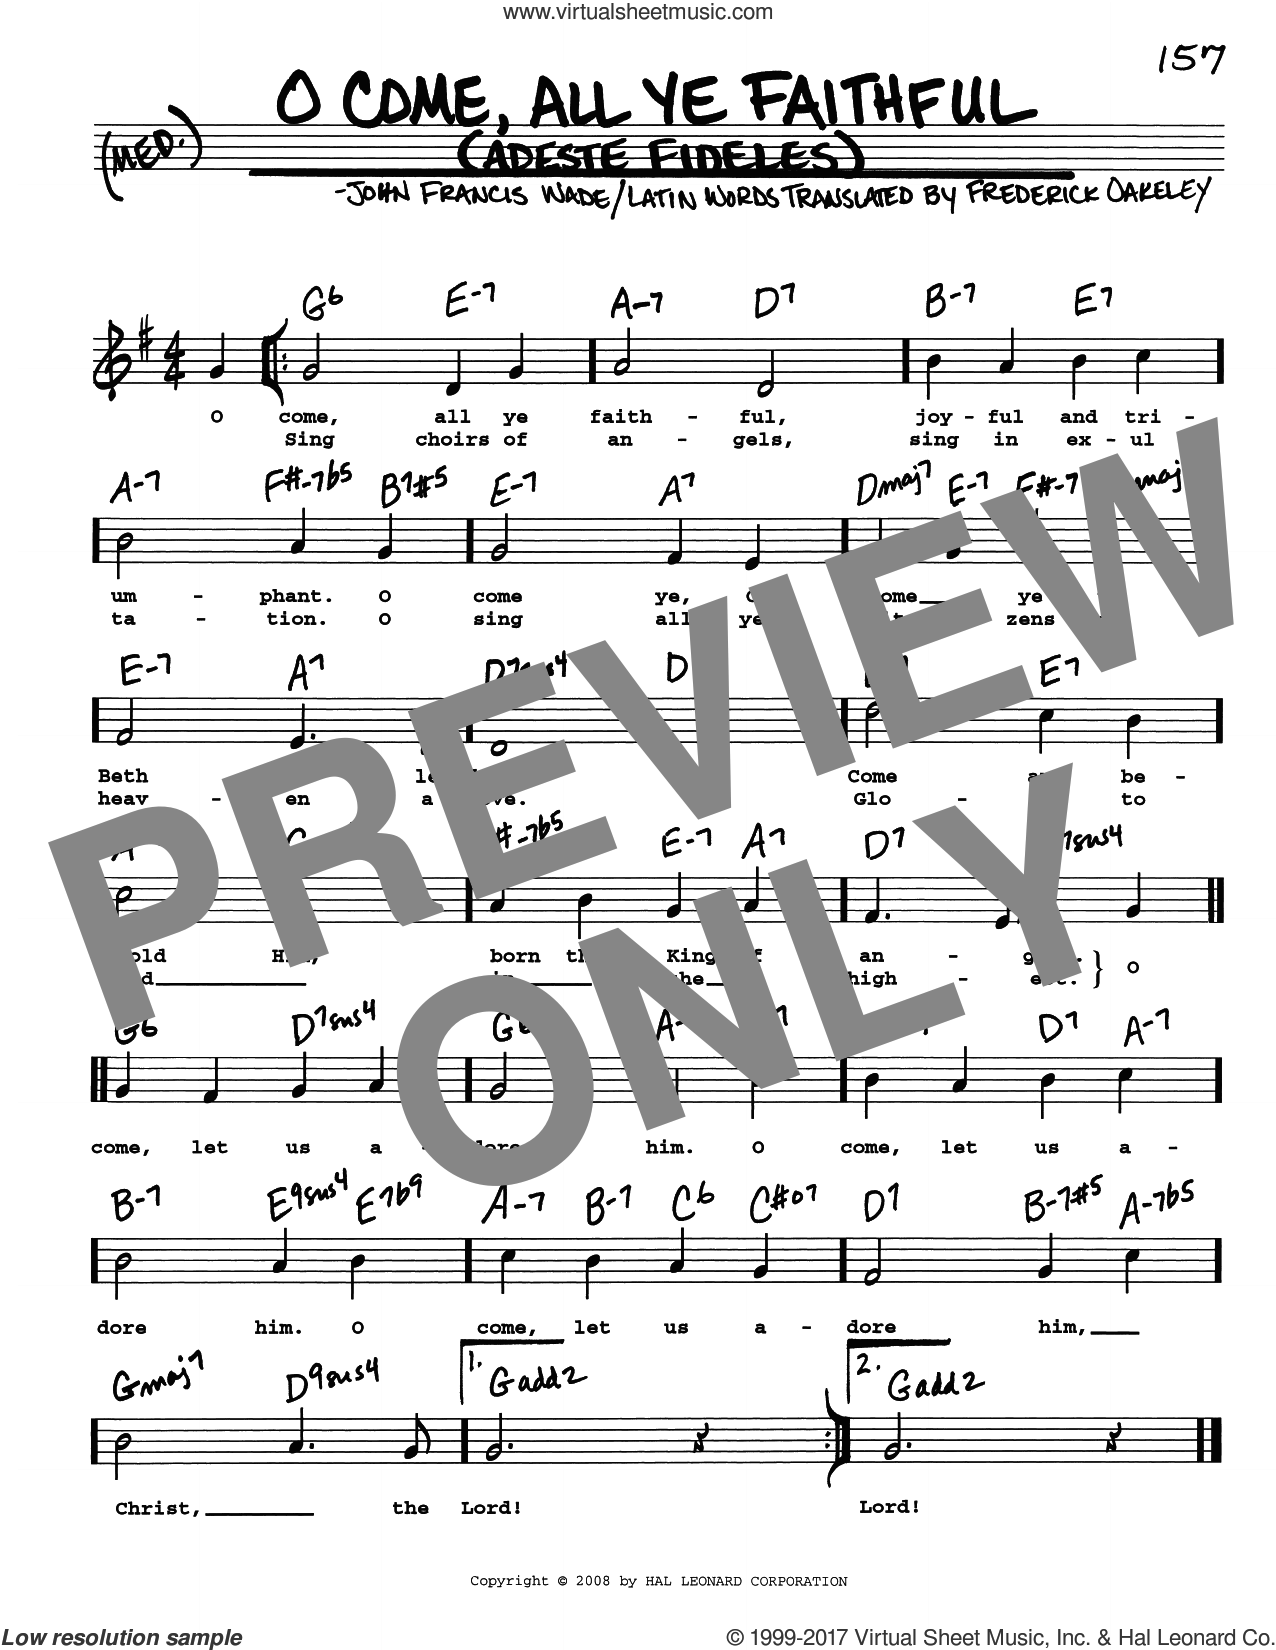 O Come, All Ye Faithful sheet music for voice and other instruments (real book with lyrics) by John Francis Wade and Frederick Oakeley (English), intermediate skill level